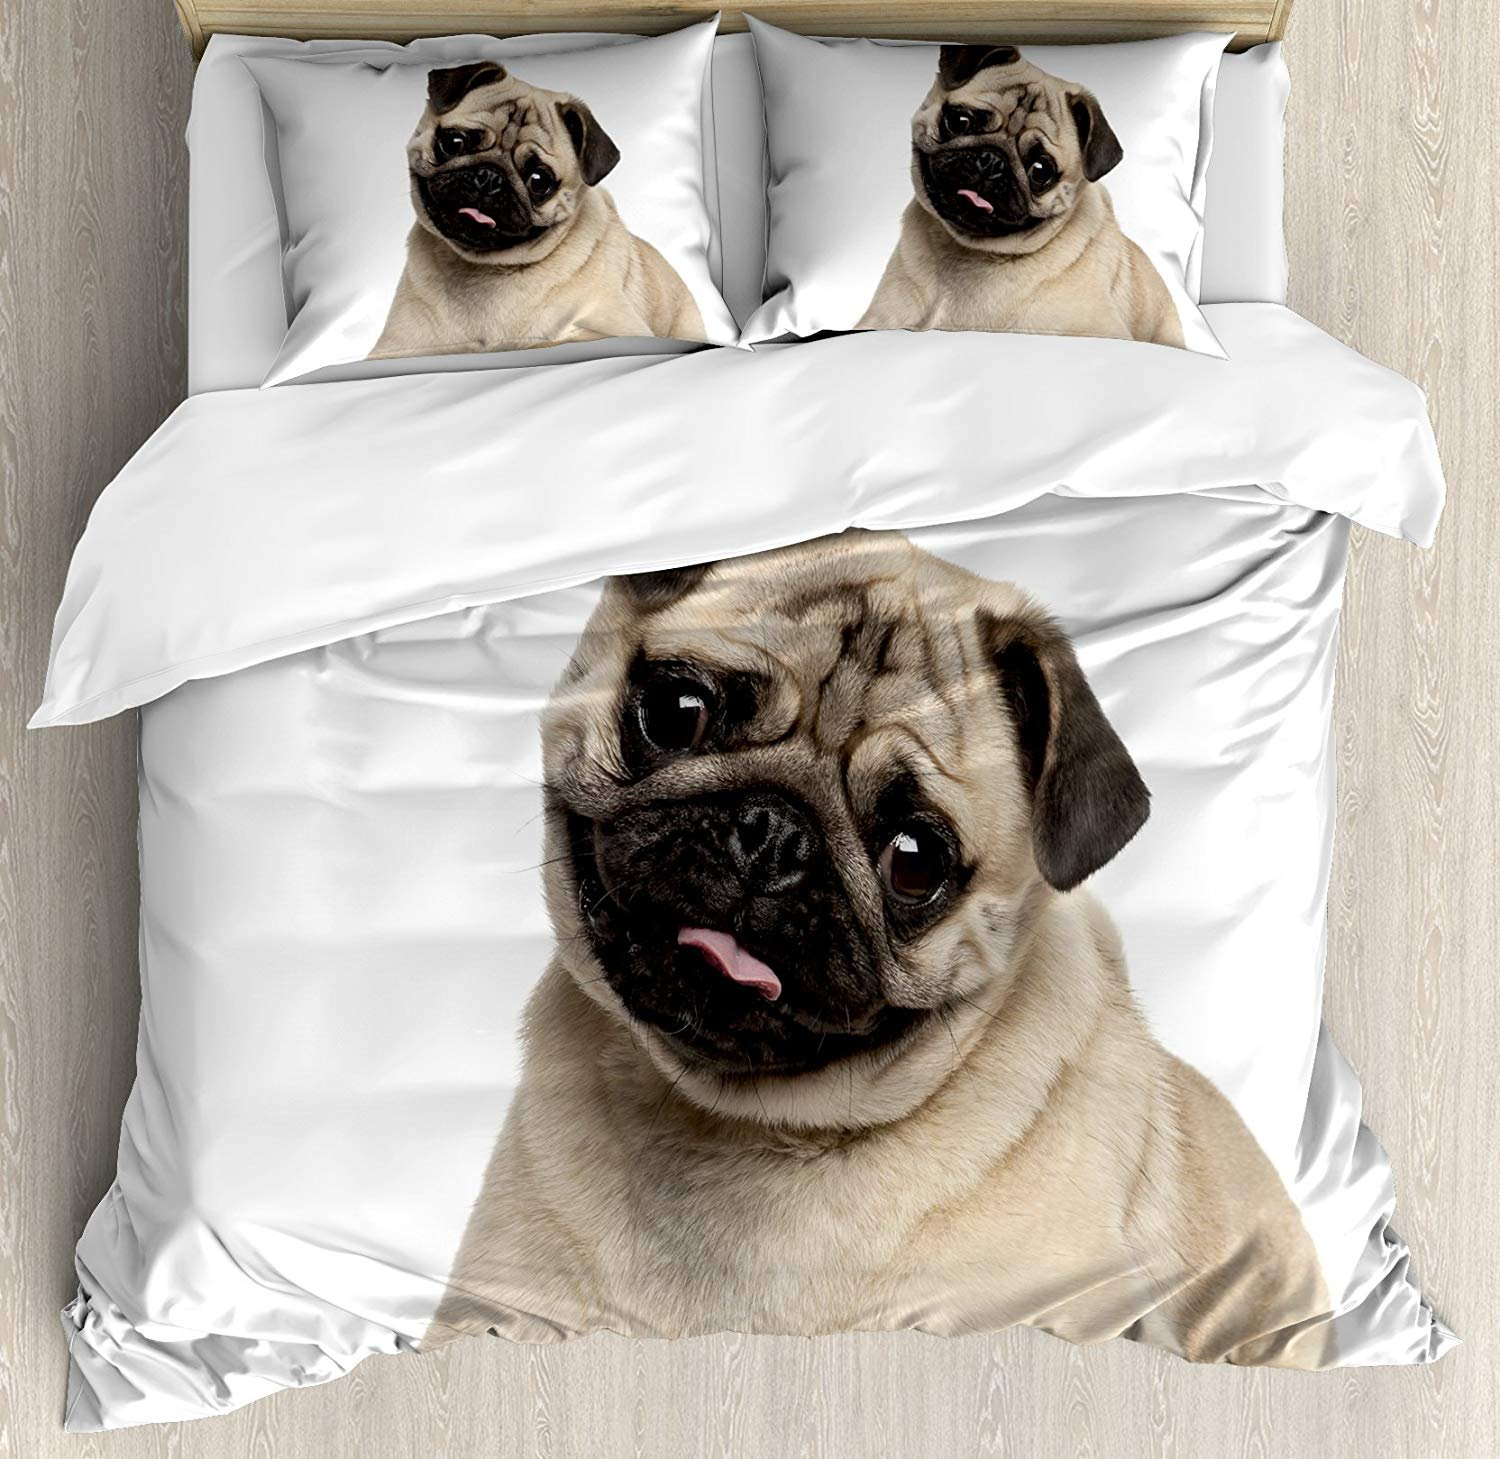 Multi 5 Twin Size Beauty Decor Pug Duvet Cover Set Nine Months Old Pug Puppy Lying Around Cute Pet Funny Animal Domestication Print 3 Piece Decorative Bedding Sets with 2 Pillow Shams Twin Size, Pale Brown Black